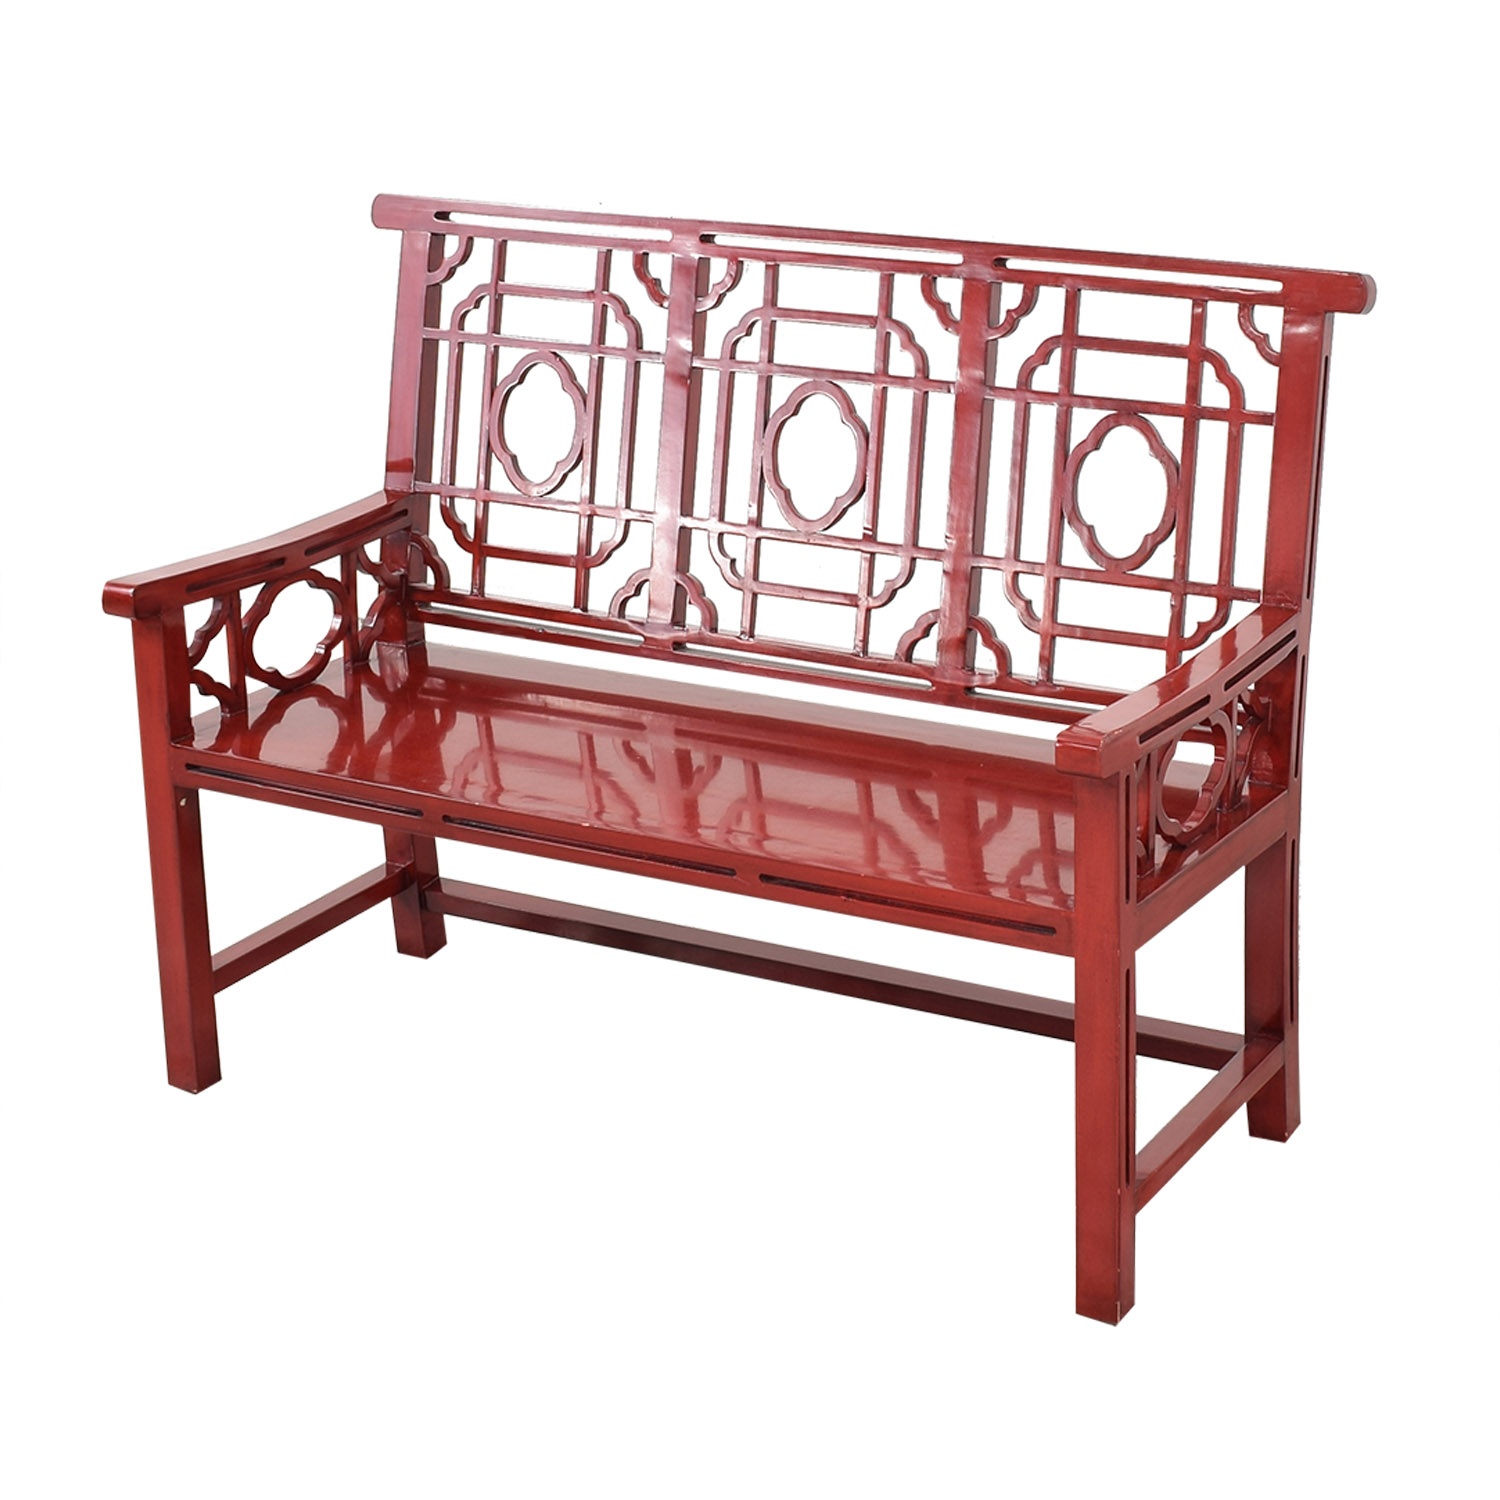 Neiman Marcus Neiman Marcus Chinese Lacquer Bench price